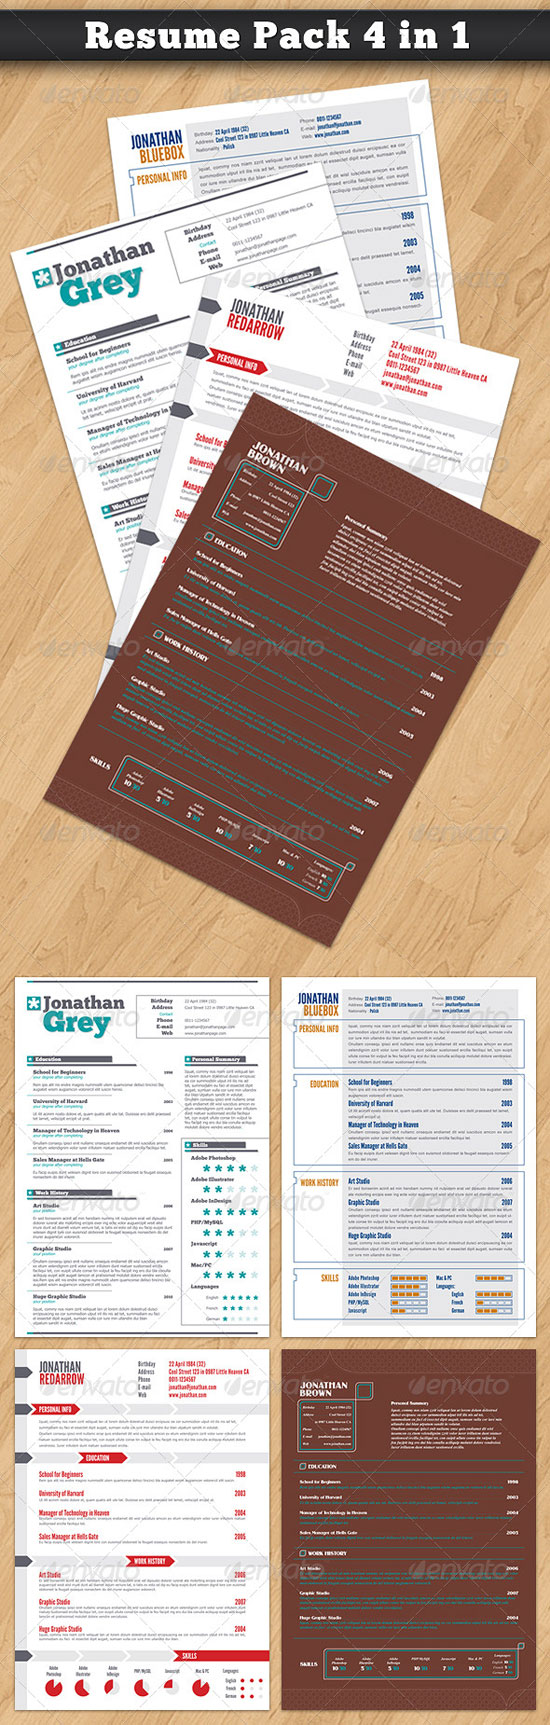 Printable Resume Forms For Free